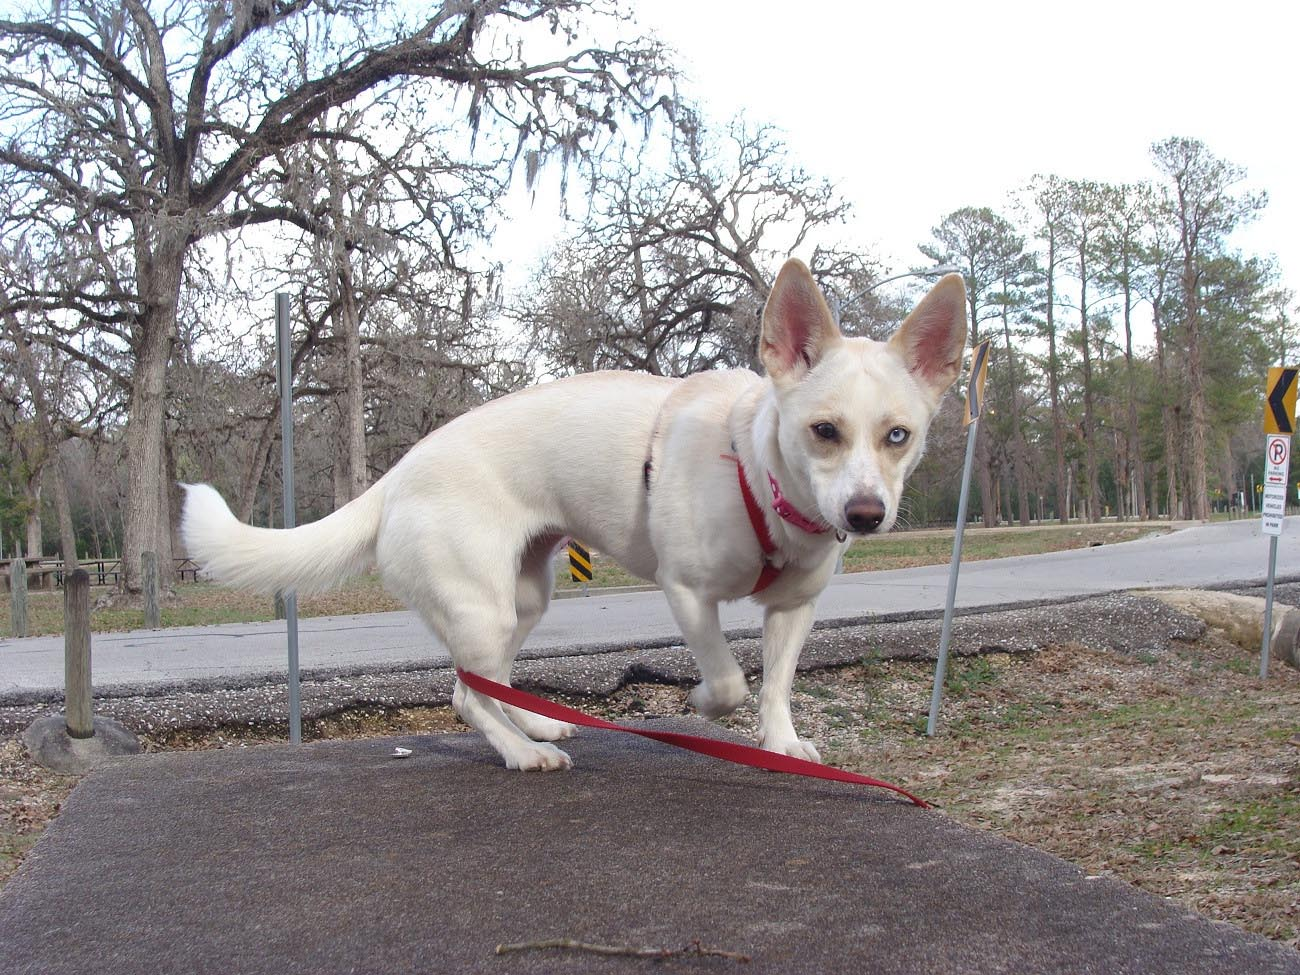 Diverting Half Chihuahua Half Husky Chihuahua Husky Mix As An Dog Breed Dog Breed Information Chihuahua Husky Mix Dog Chihuahua Husky Mix Price bark post Chihuahua Husky Mix